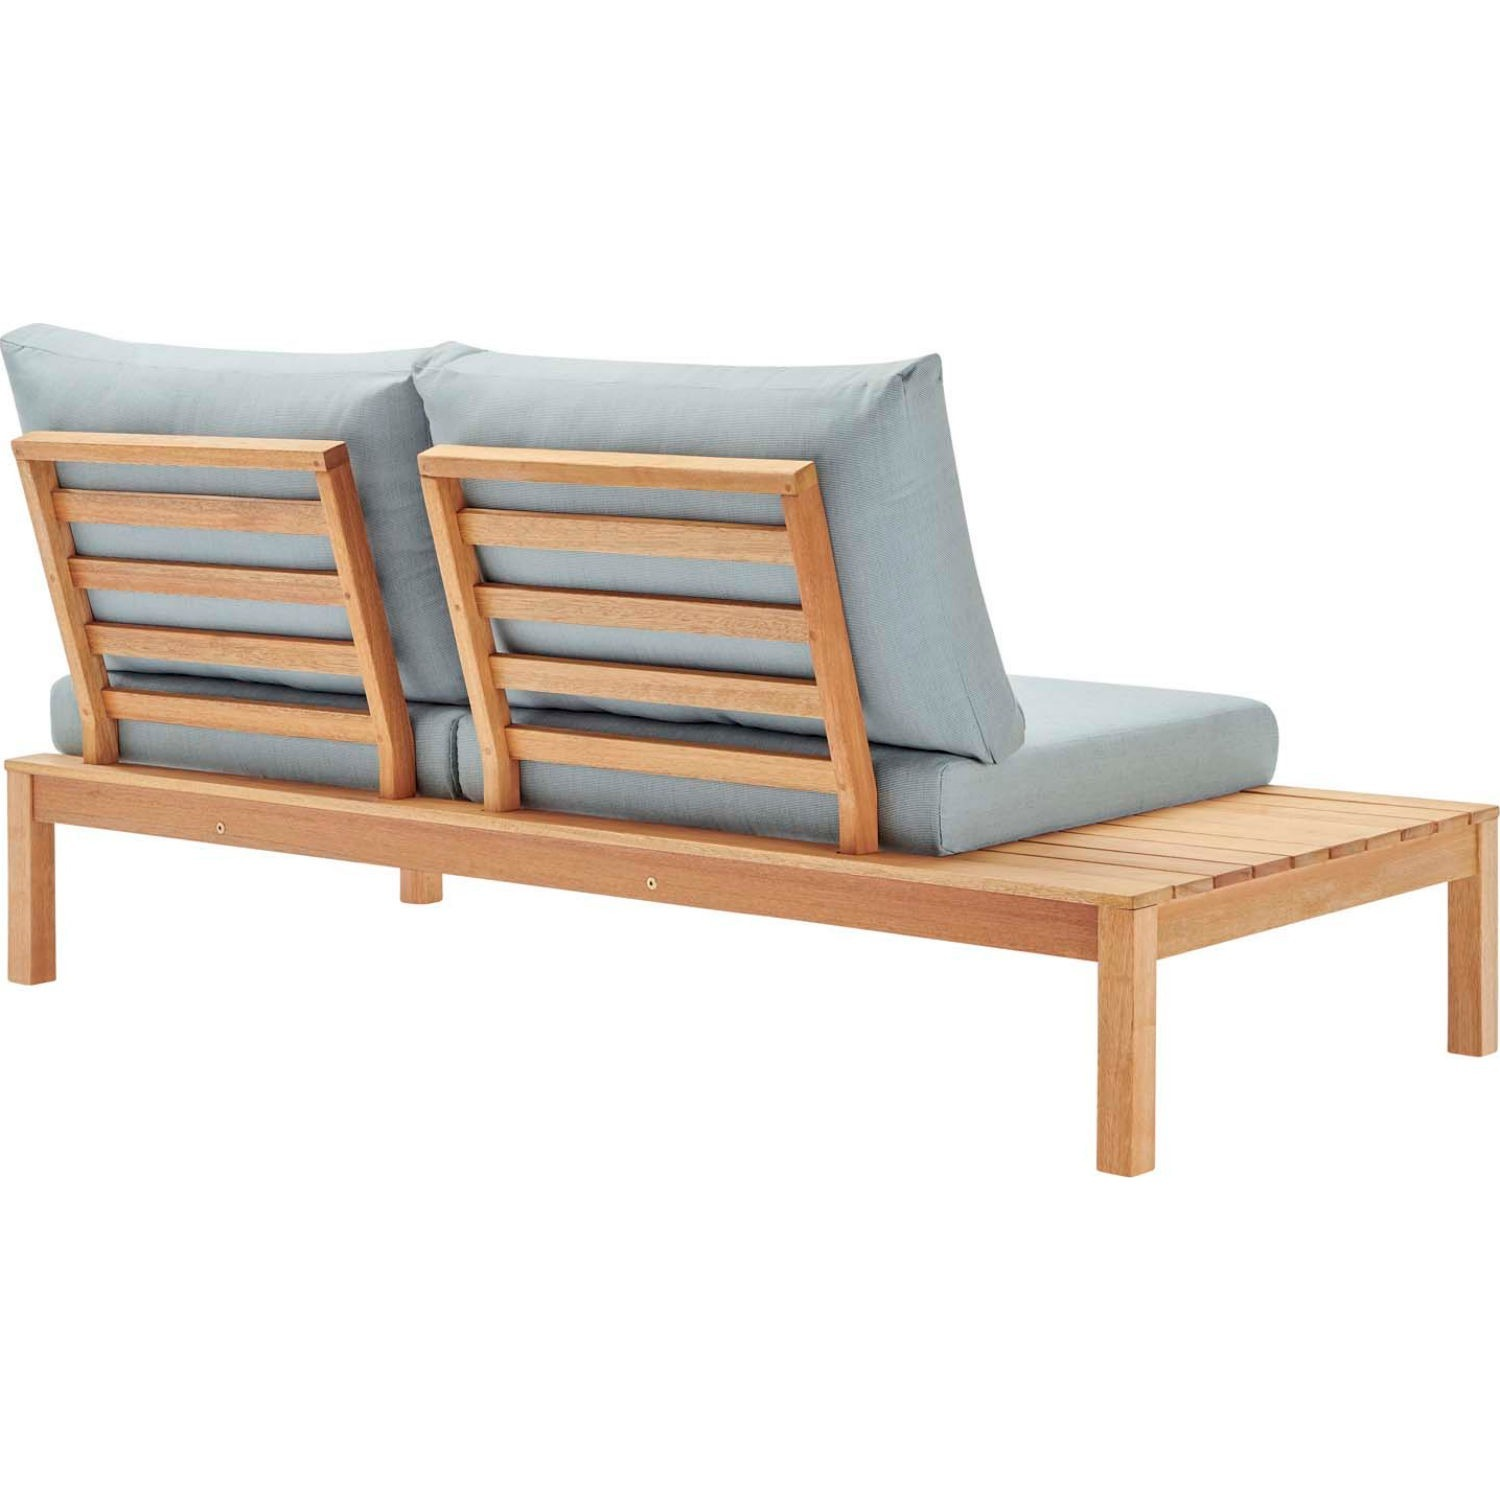 3-Piece Outdoor Sectional In Natural Light Blue - image-2